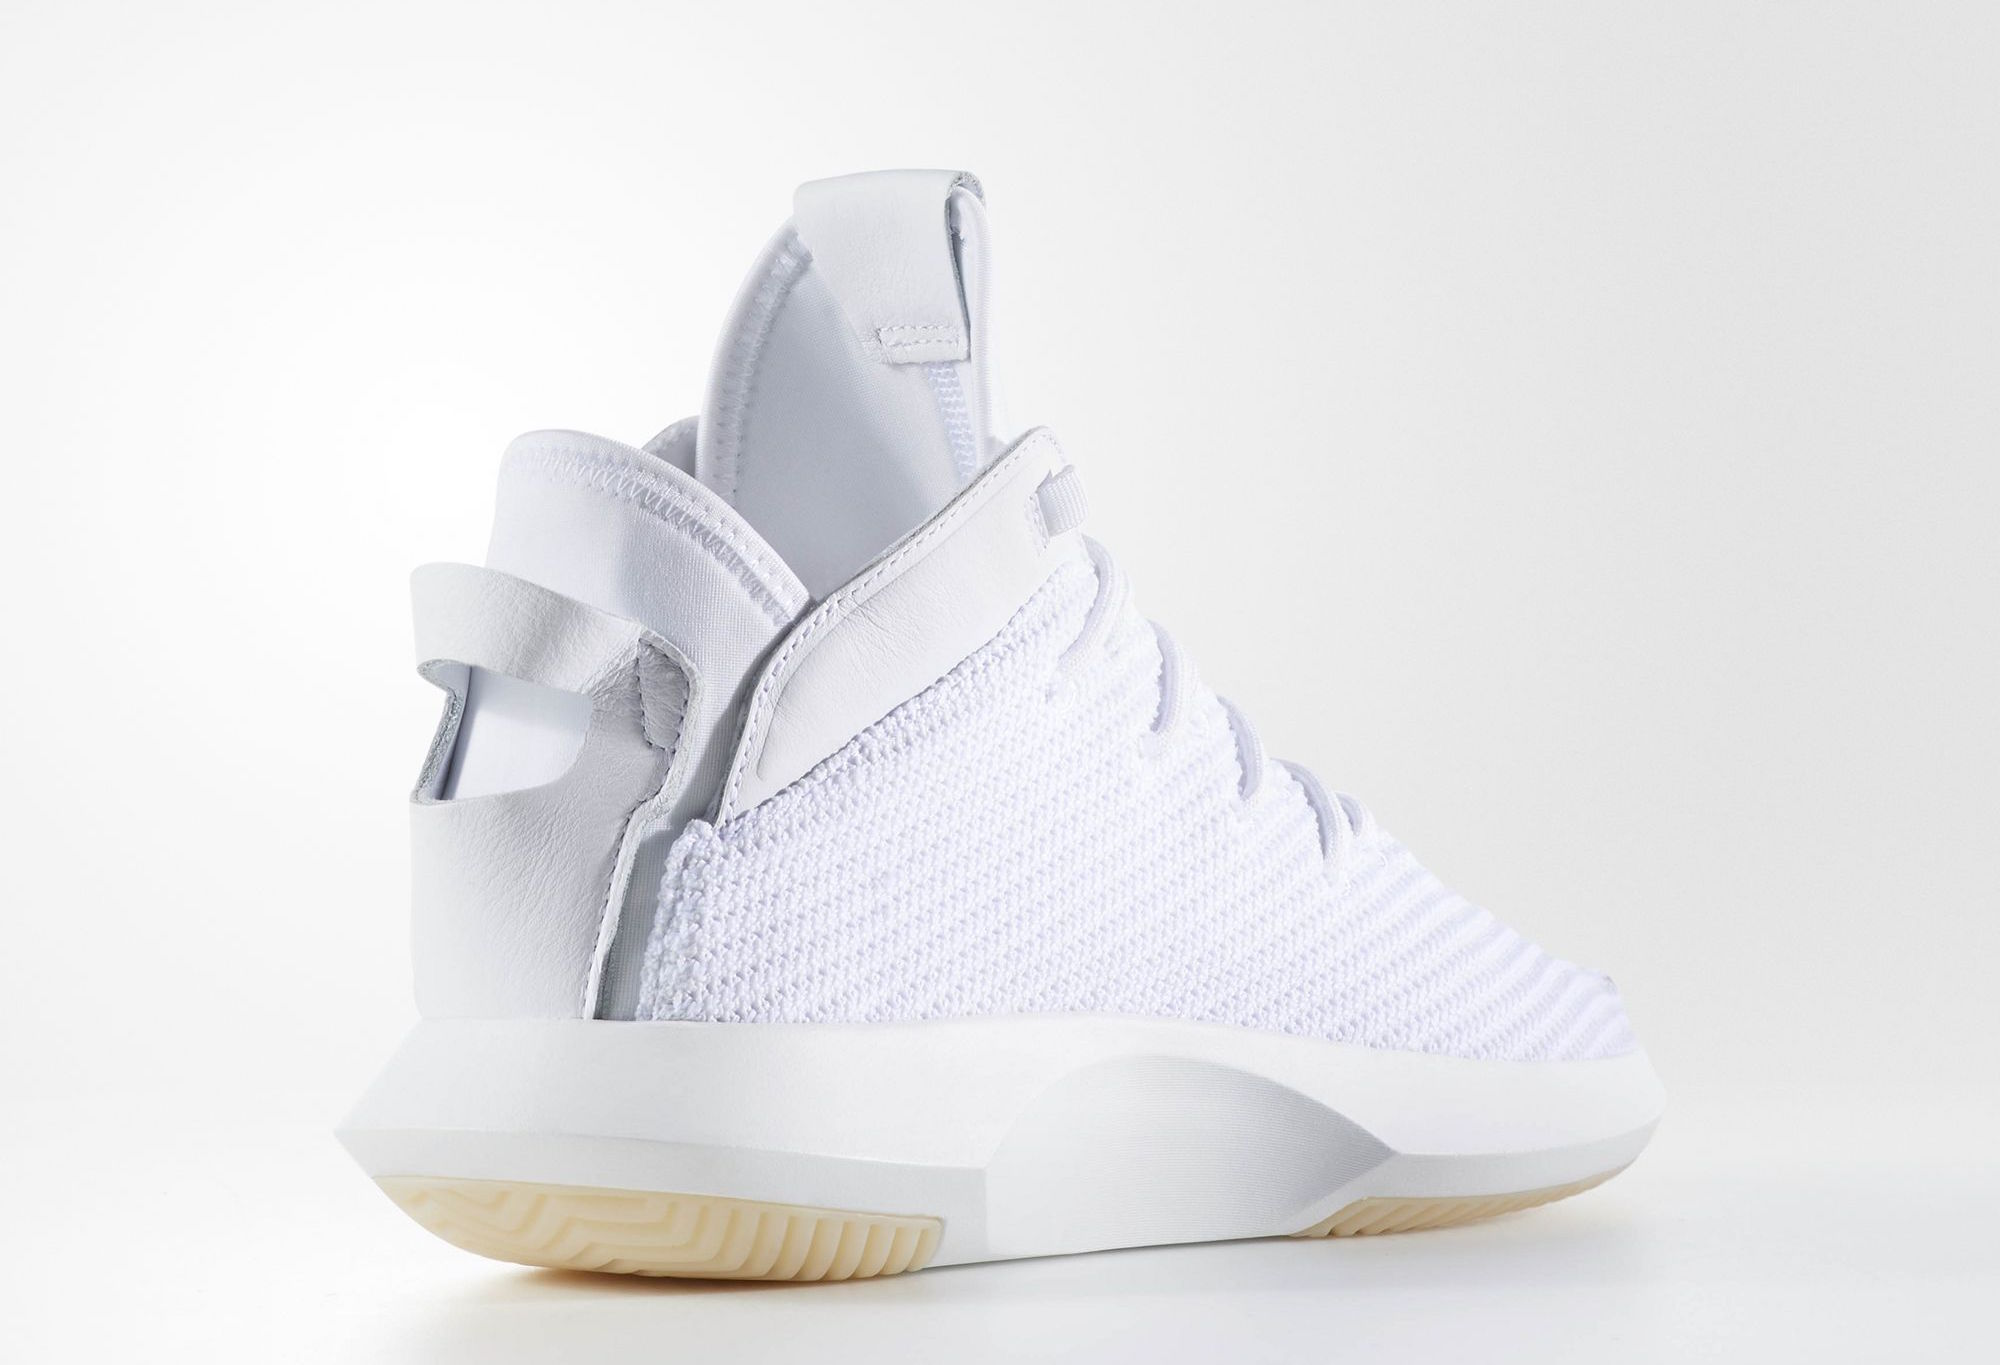 check out d6cb5 29fa6 adidas crazy 1 adv primeknit yacht party 4